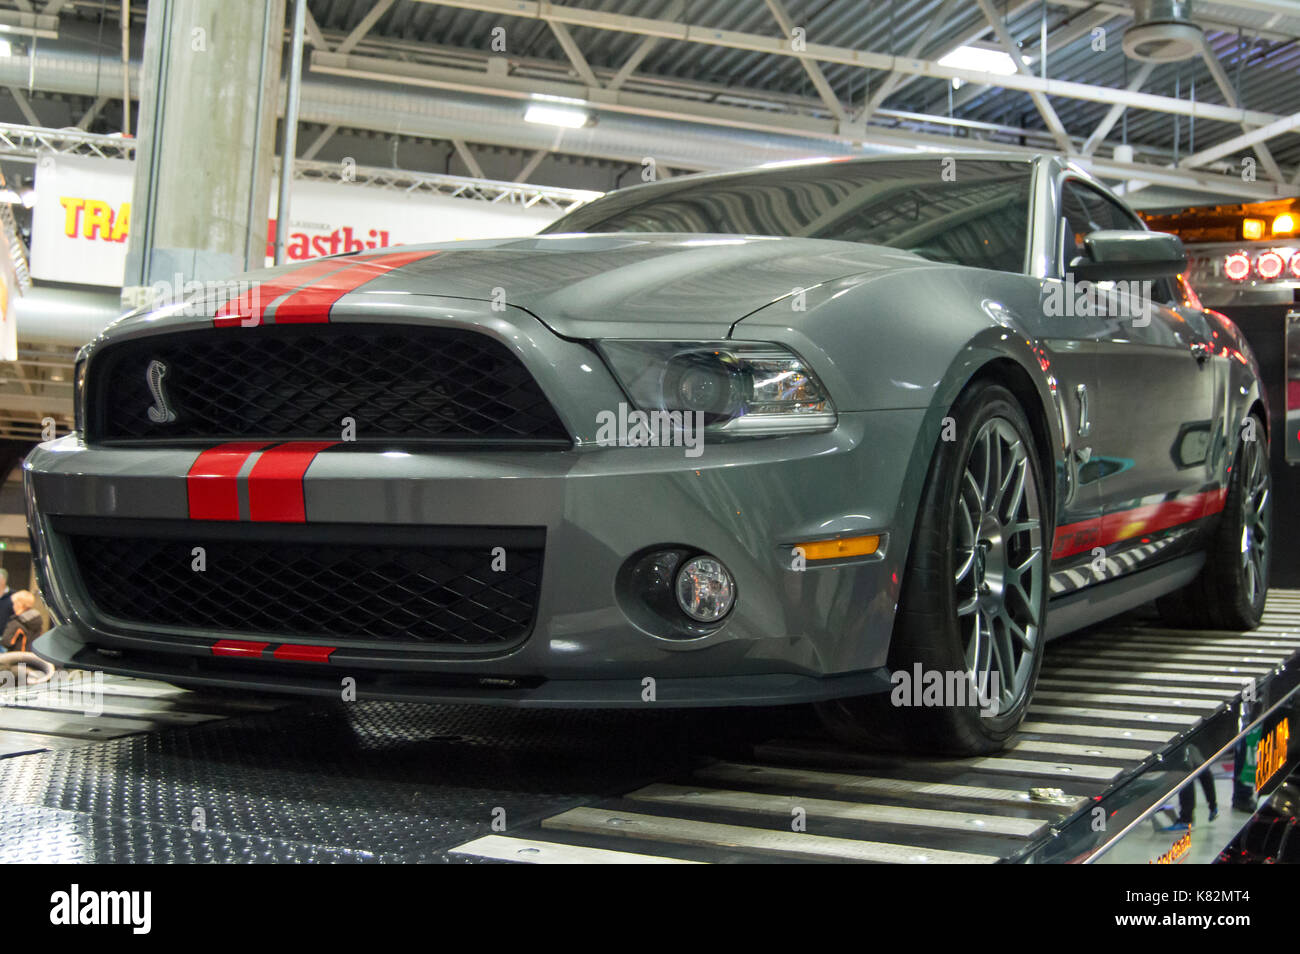 Shelby Gt500 2016 >> Ford Mustang Shelby Gt500 Oslo Motorshow 2016 Stock Photo